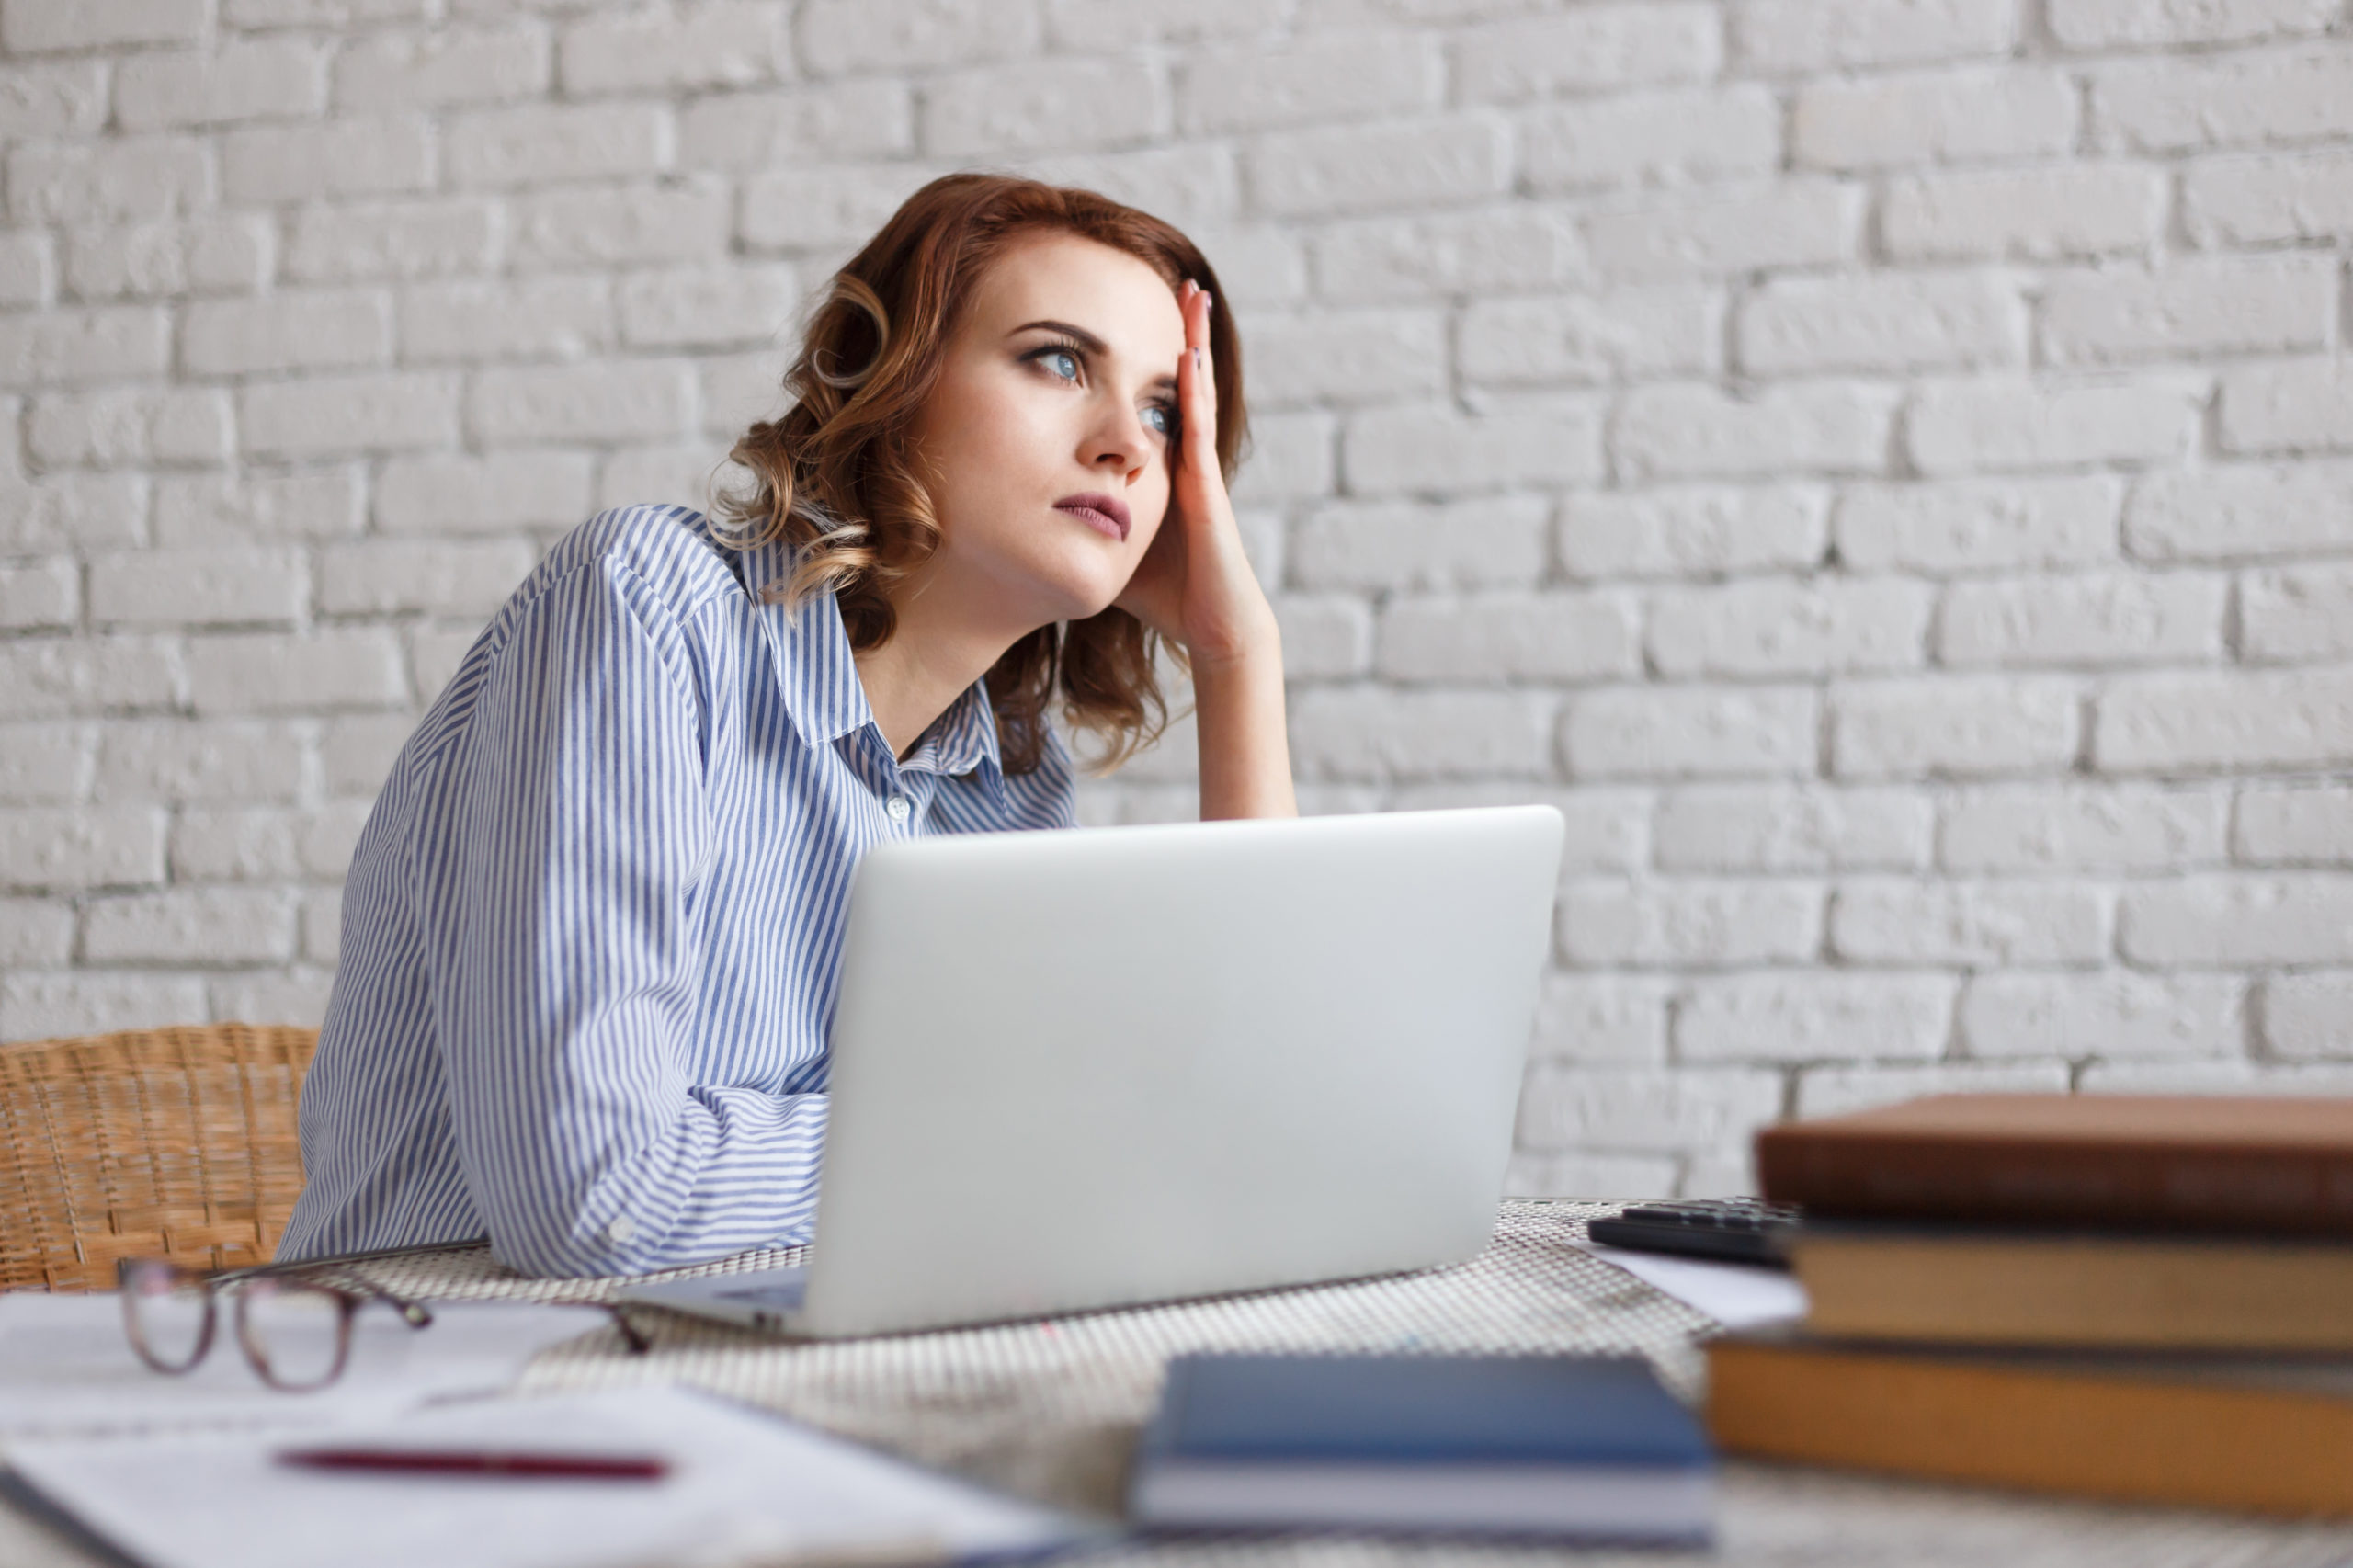 woman thinking of social media content in front of a laptop